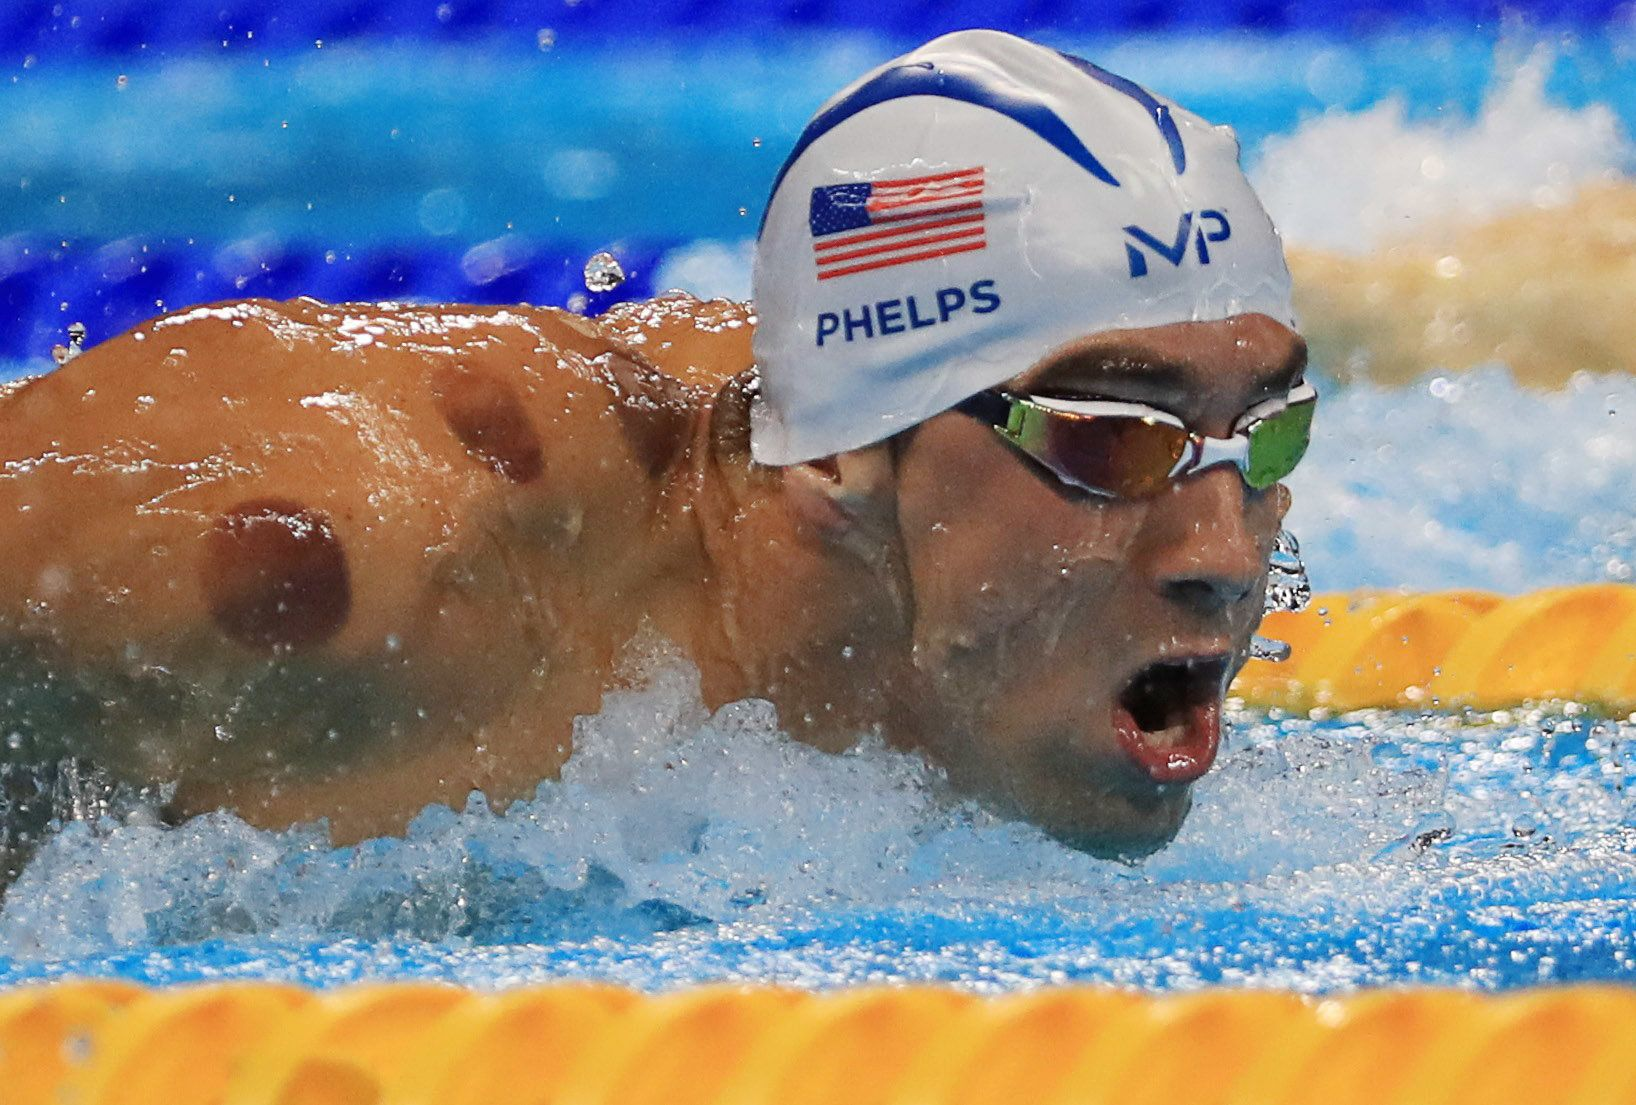 Michael Phelps competes at the Rio Olympicswith circular bruises from cuppingon his shoulders and back.